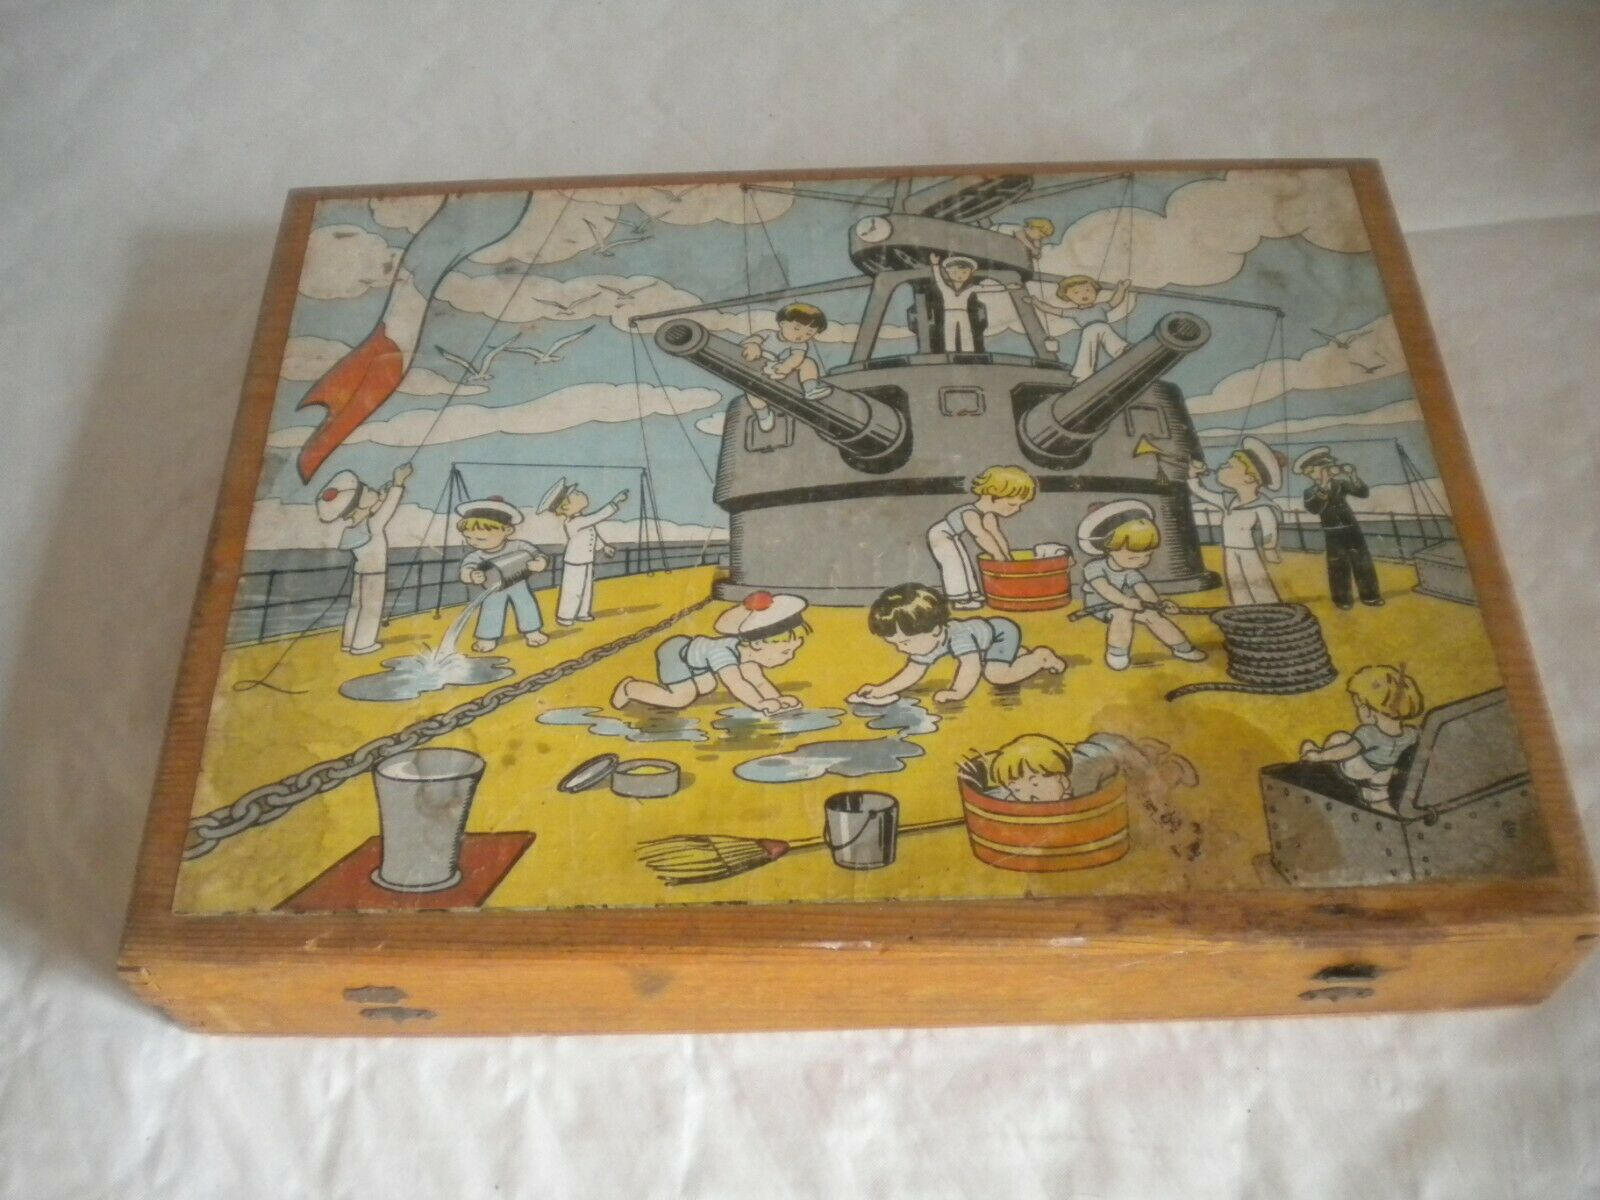 Jahr 1930s Holzen block puzzle Boxed 33 x 25 cms Air France kämpfenship scouts